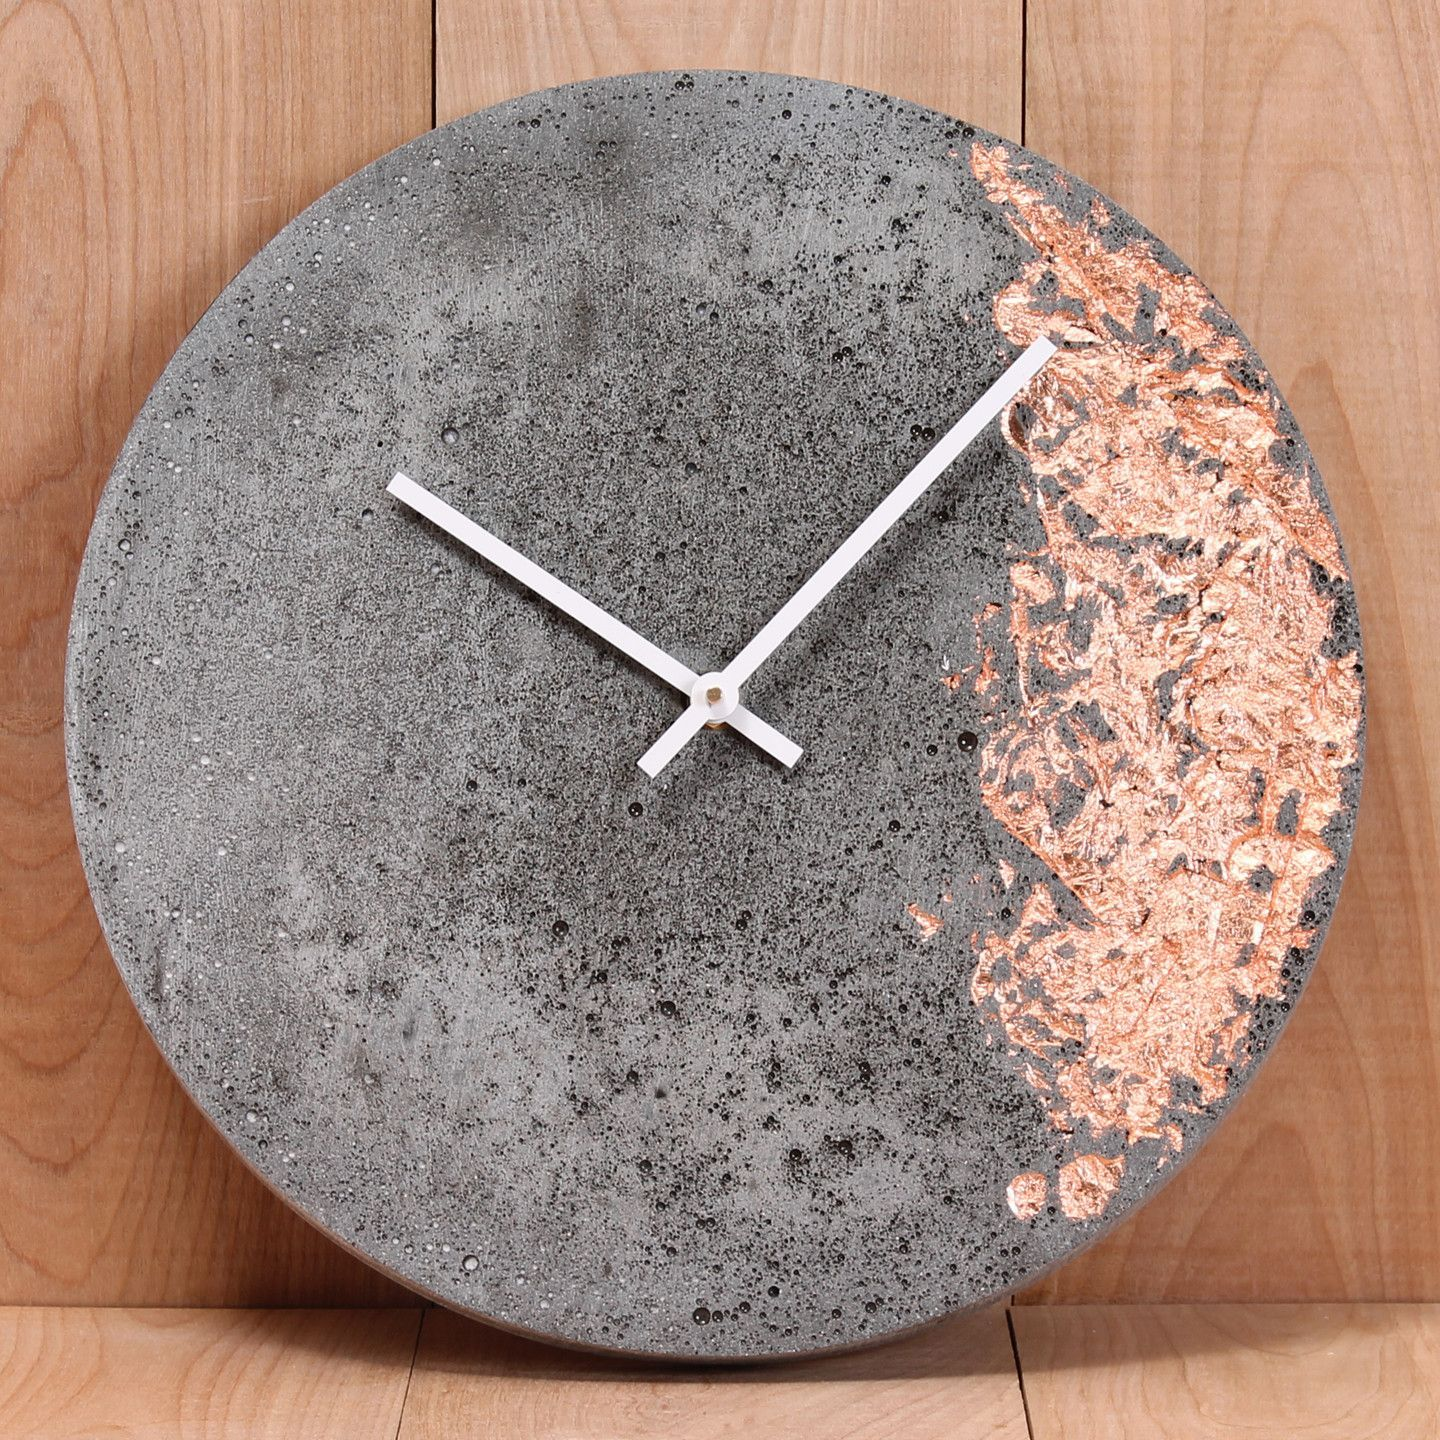 Lightweight Cast Concrete 11 Wall Clock With Inlaid Copper Silver Or Gold Foil Made In Canada Diy Clock Wall Concrete Crafts Concrete Diy